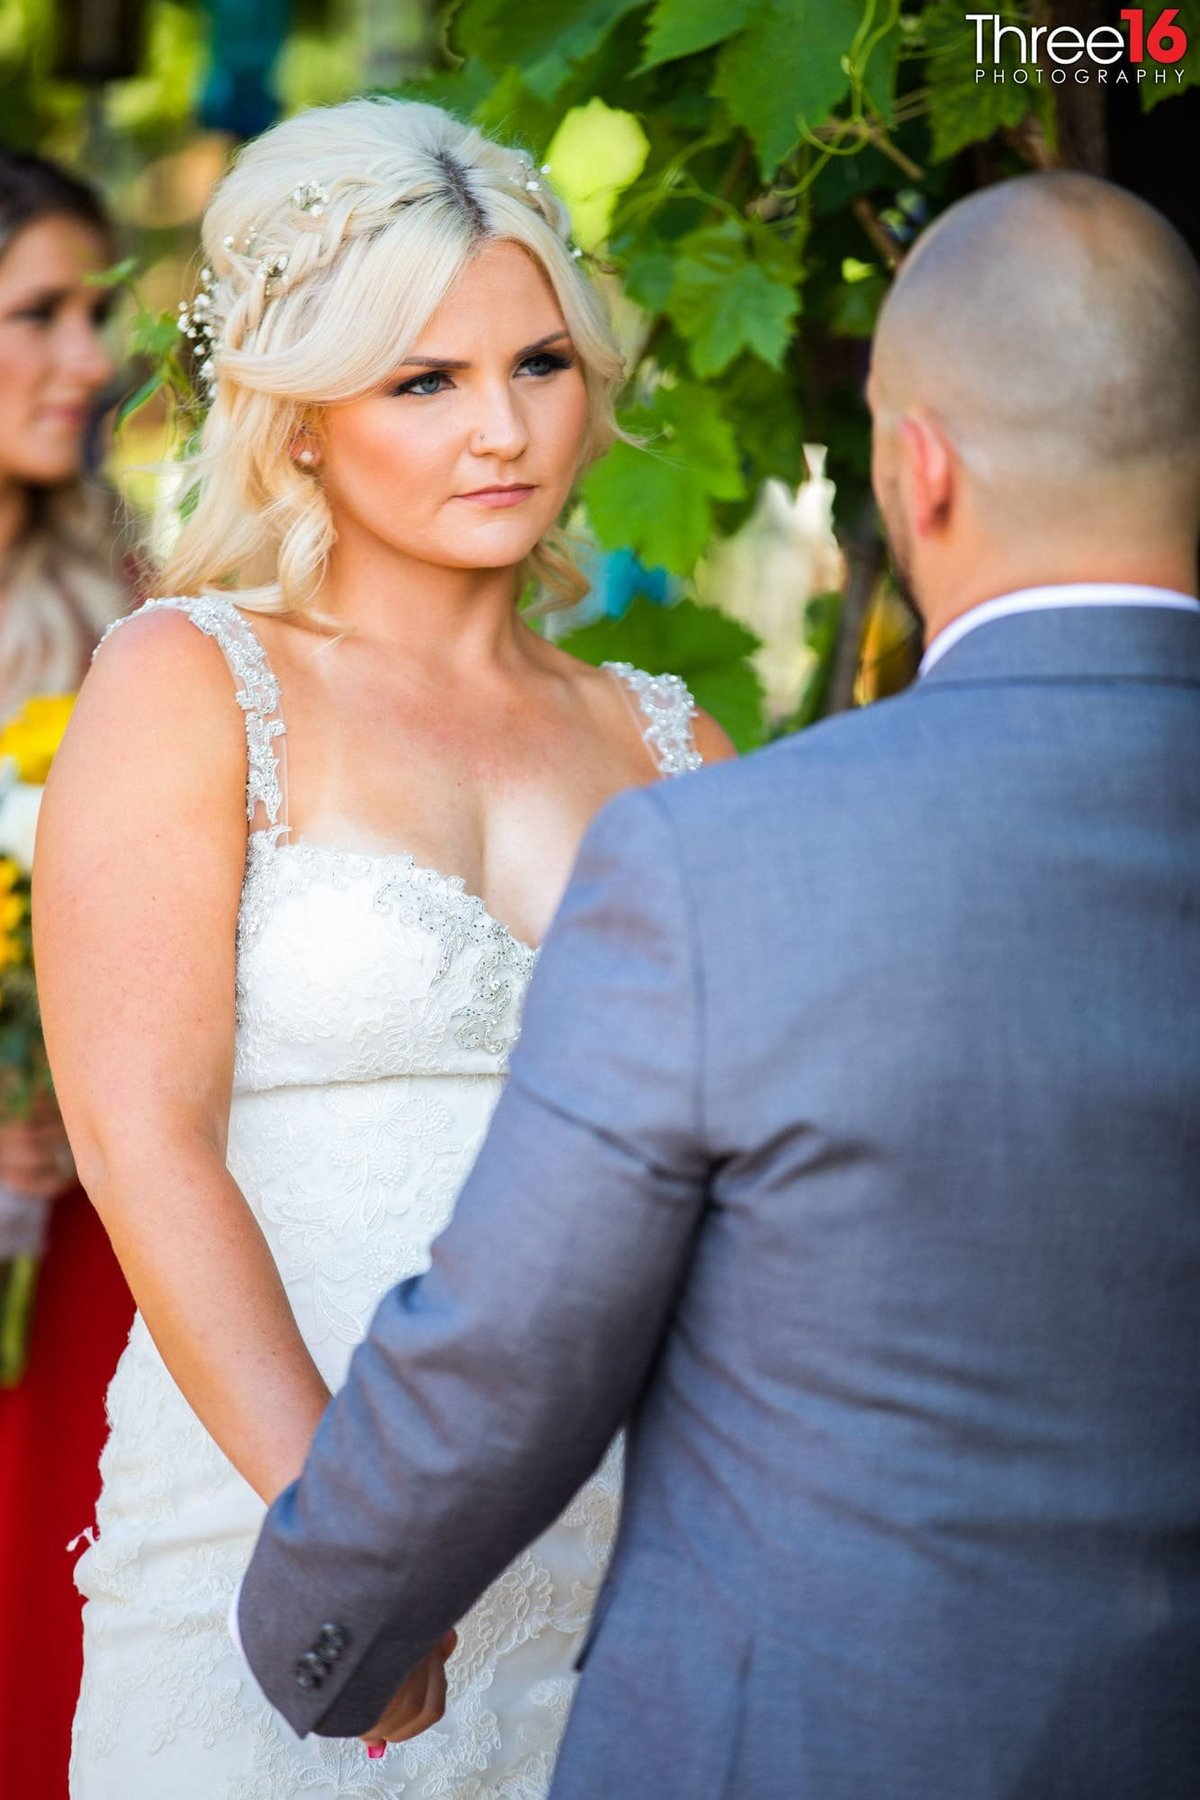 Bride staring at her Groom during wedding ceremony